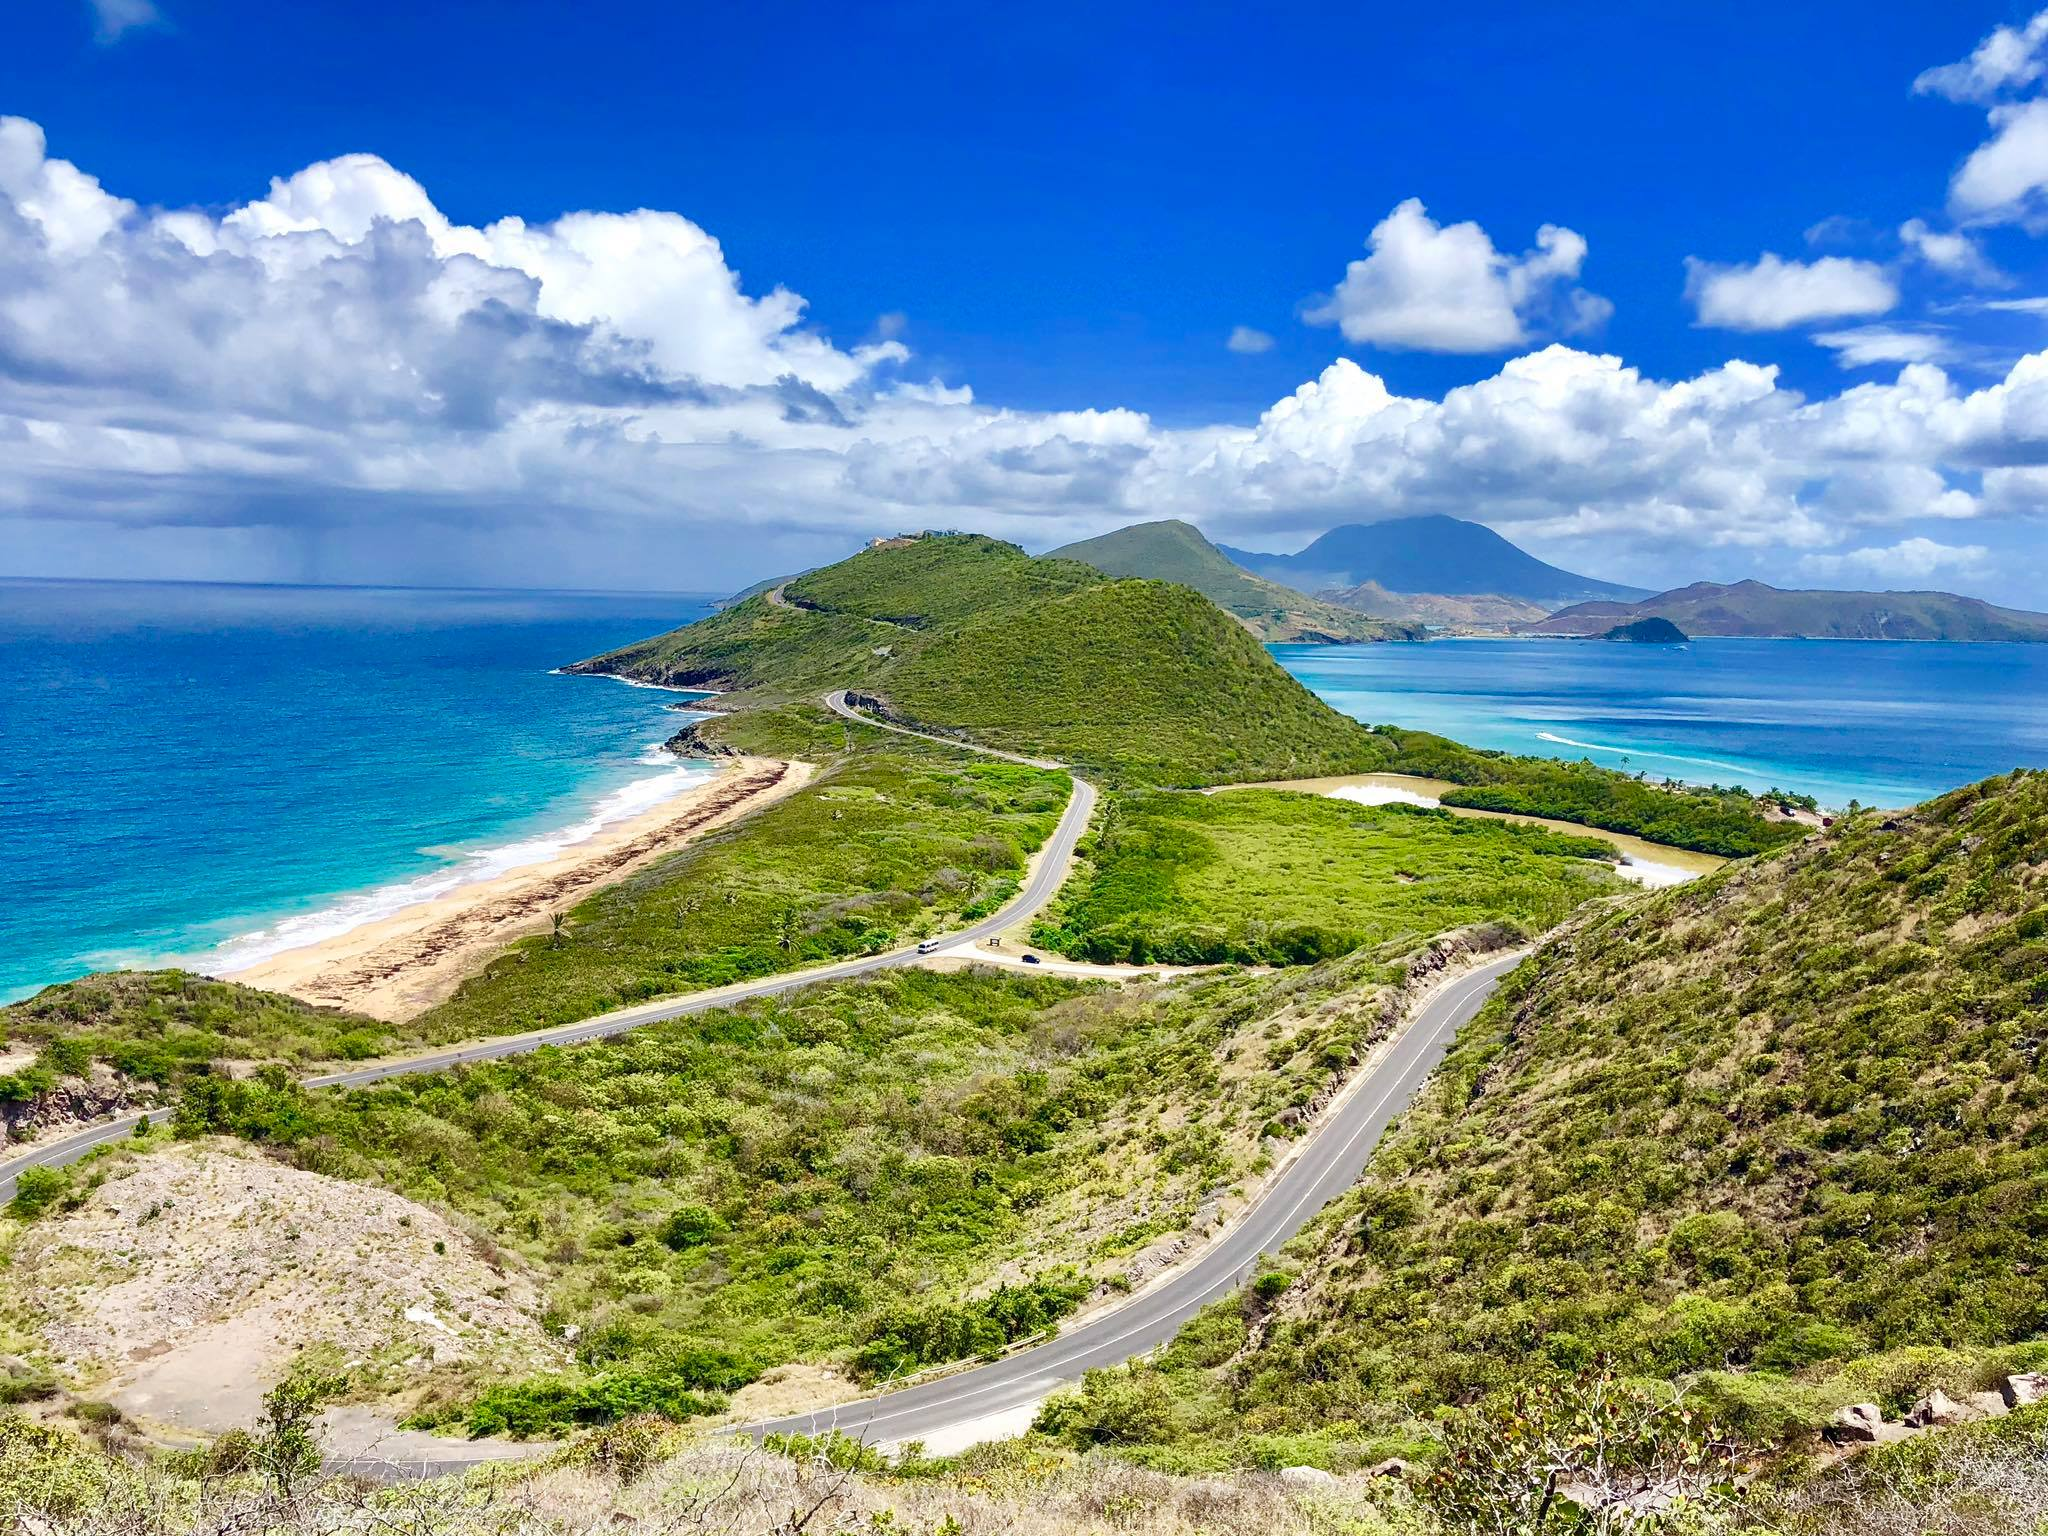 Kach Solo Travels in 2019 Hello from St Kitts 4.jpg